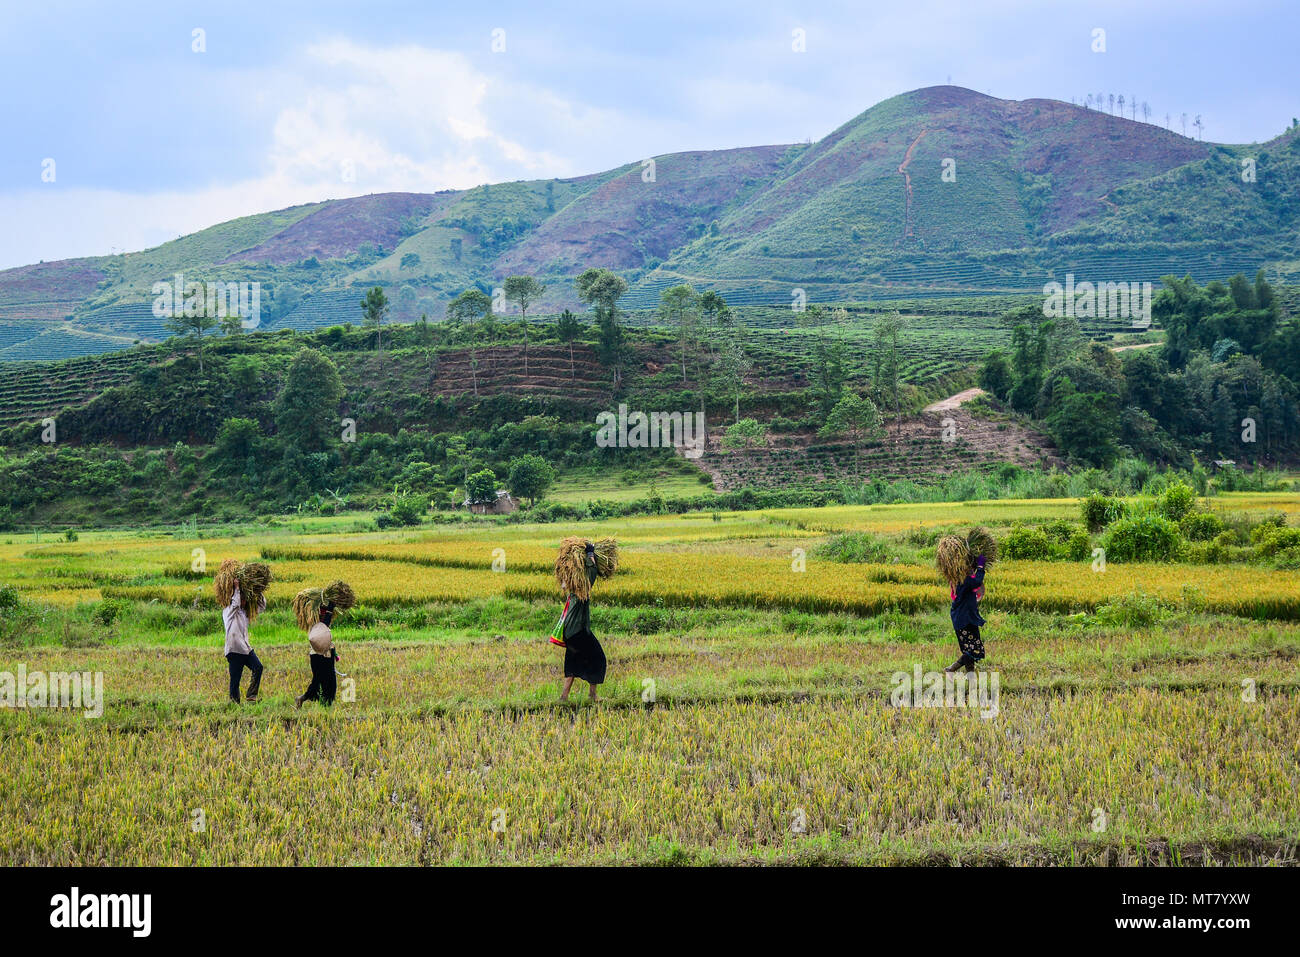 Hmong people havesting rice on the field at summer in Northern Vietnam. - Stock Image